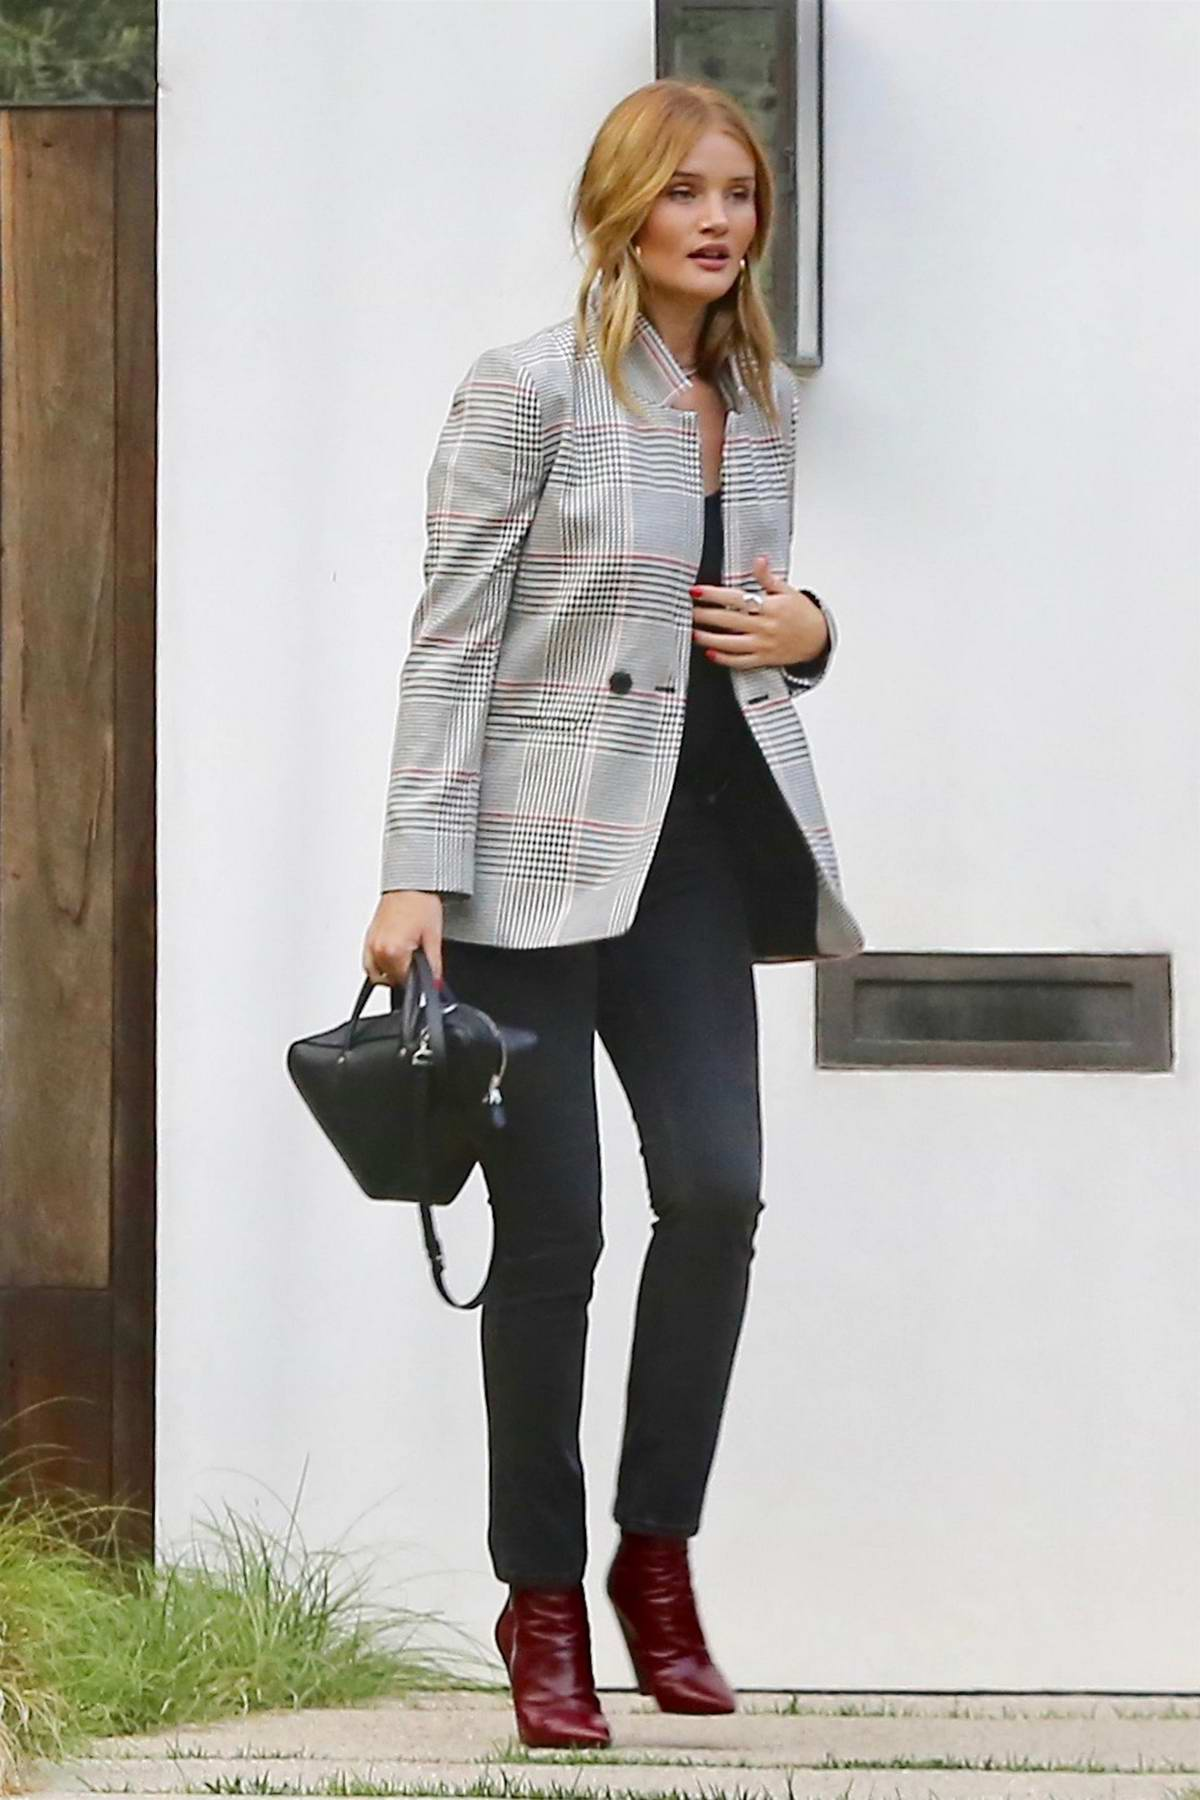 Rosie Huntington-Whiteley spotted arriving at a party with a Friend in Hollywood, Los Angeles